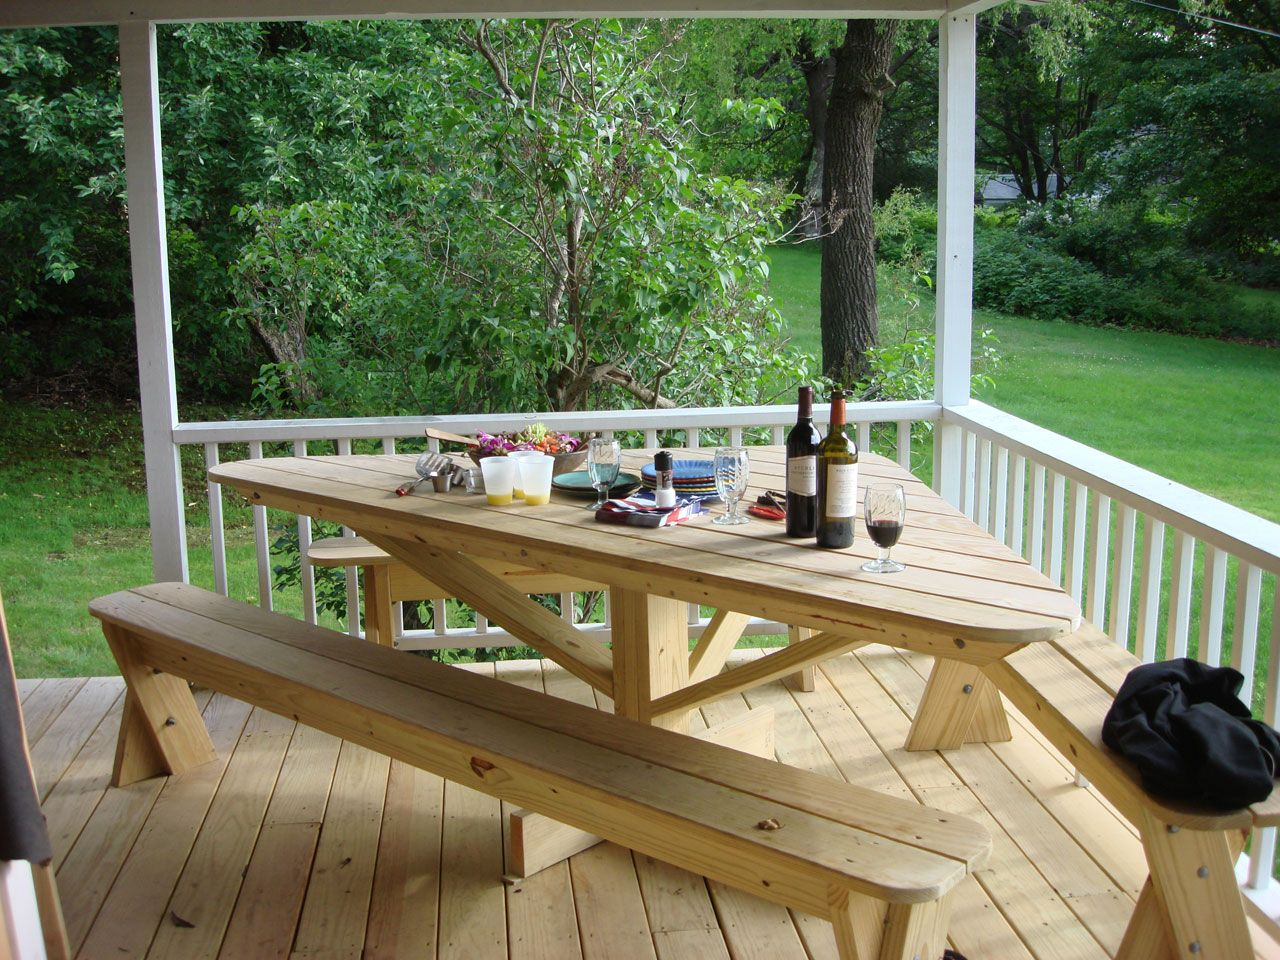 Solid roof pergola plans in addition park bench picnic table moreover - Interesting Picnic Table For Spaces Low On Egress